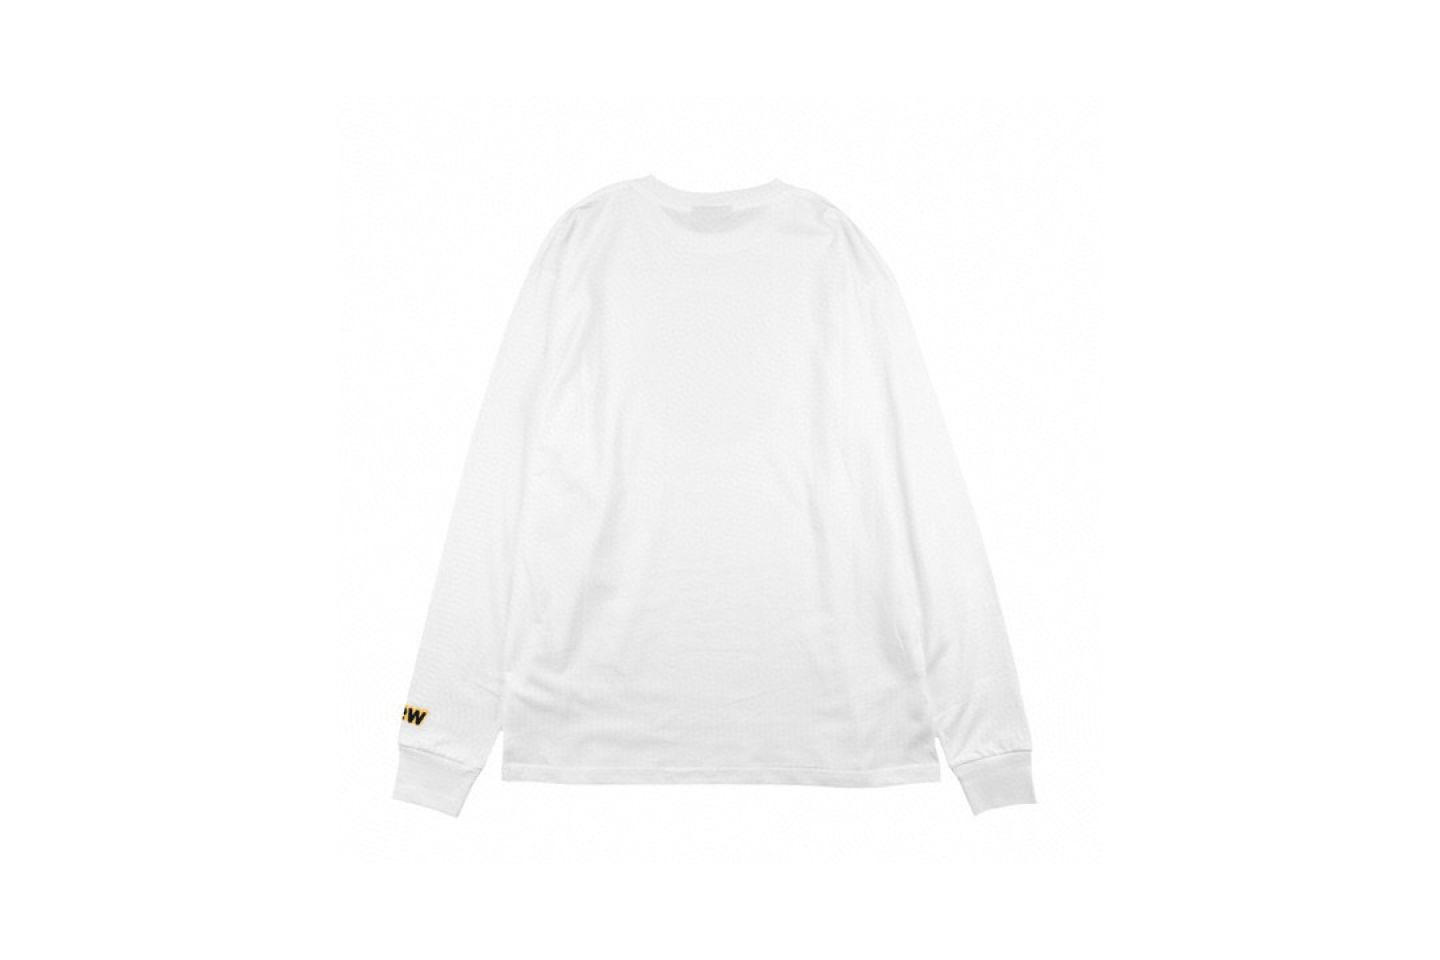 "Shirt Drew House 2020 classic smiley face long sleeve T-shirt ""White"" 5 drew_house_2020_classic_smiley_face_long_sleeve_t_shirt_white_5"